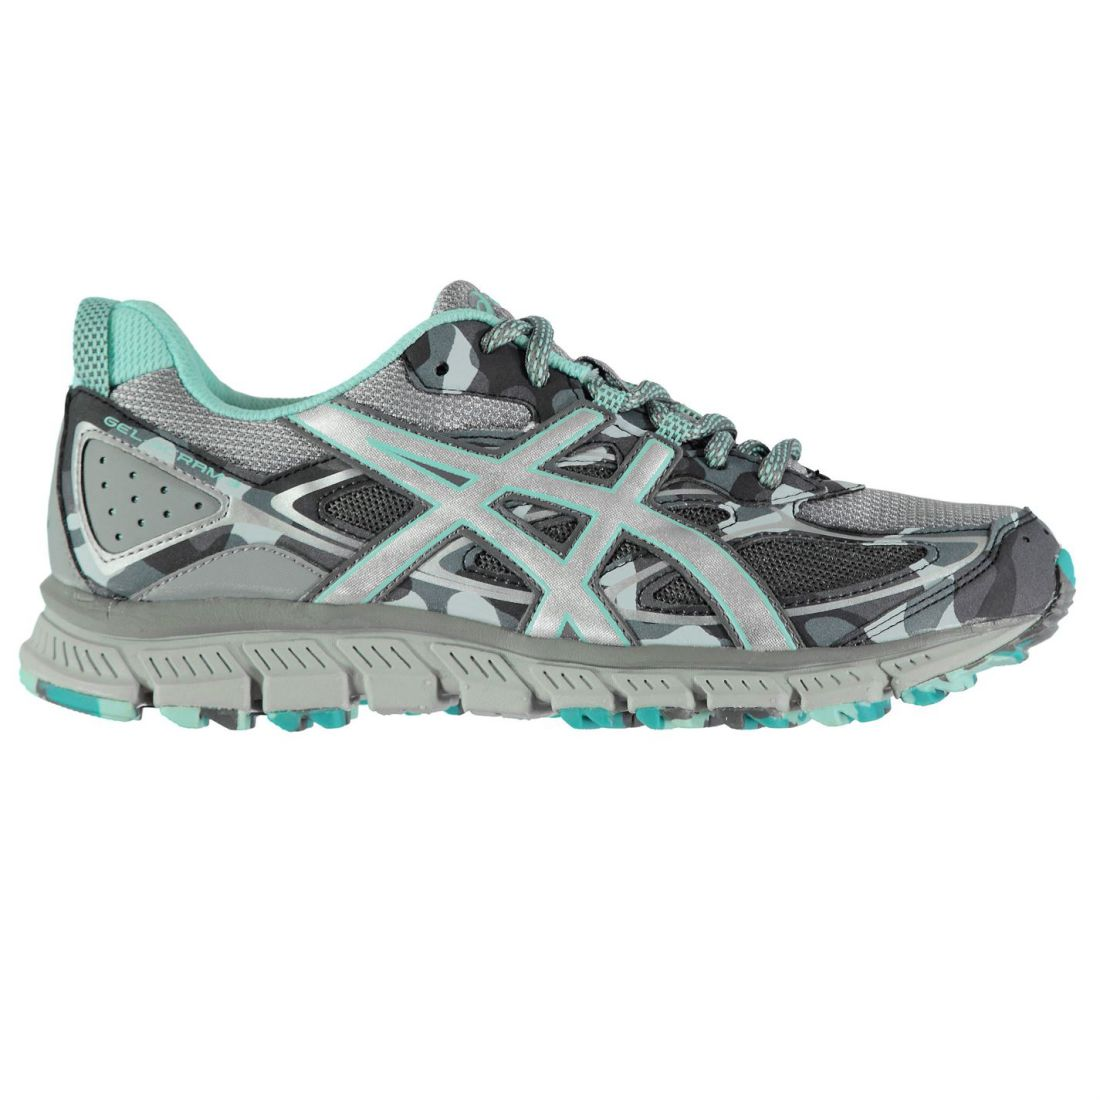 Asics Gel Scram 3 Running shoes Ladies Trail Laces Fastened Padded Ankle Collar